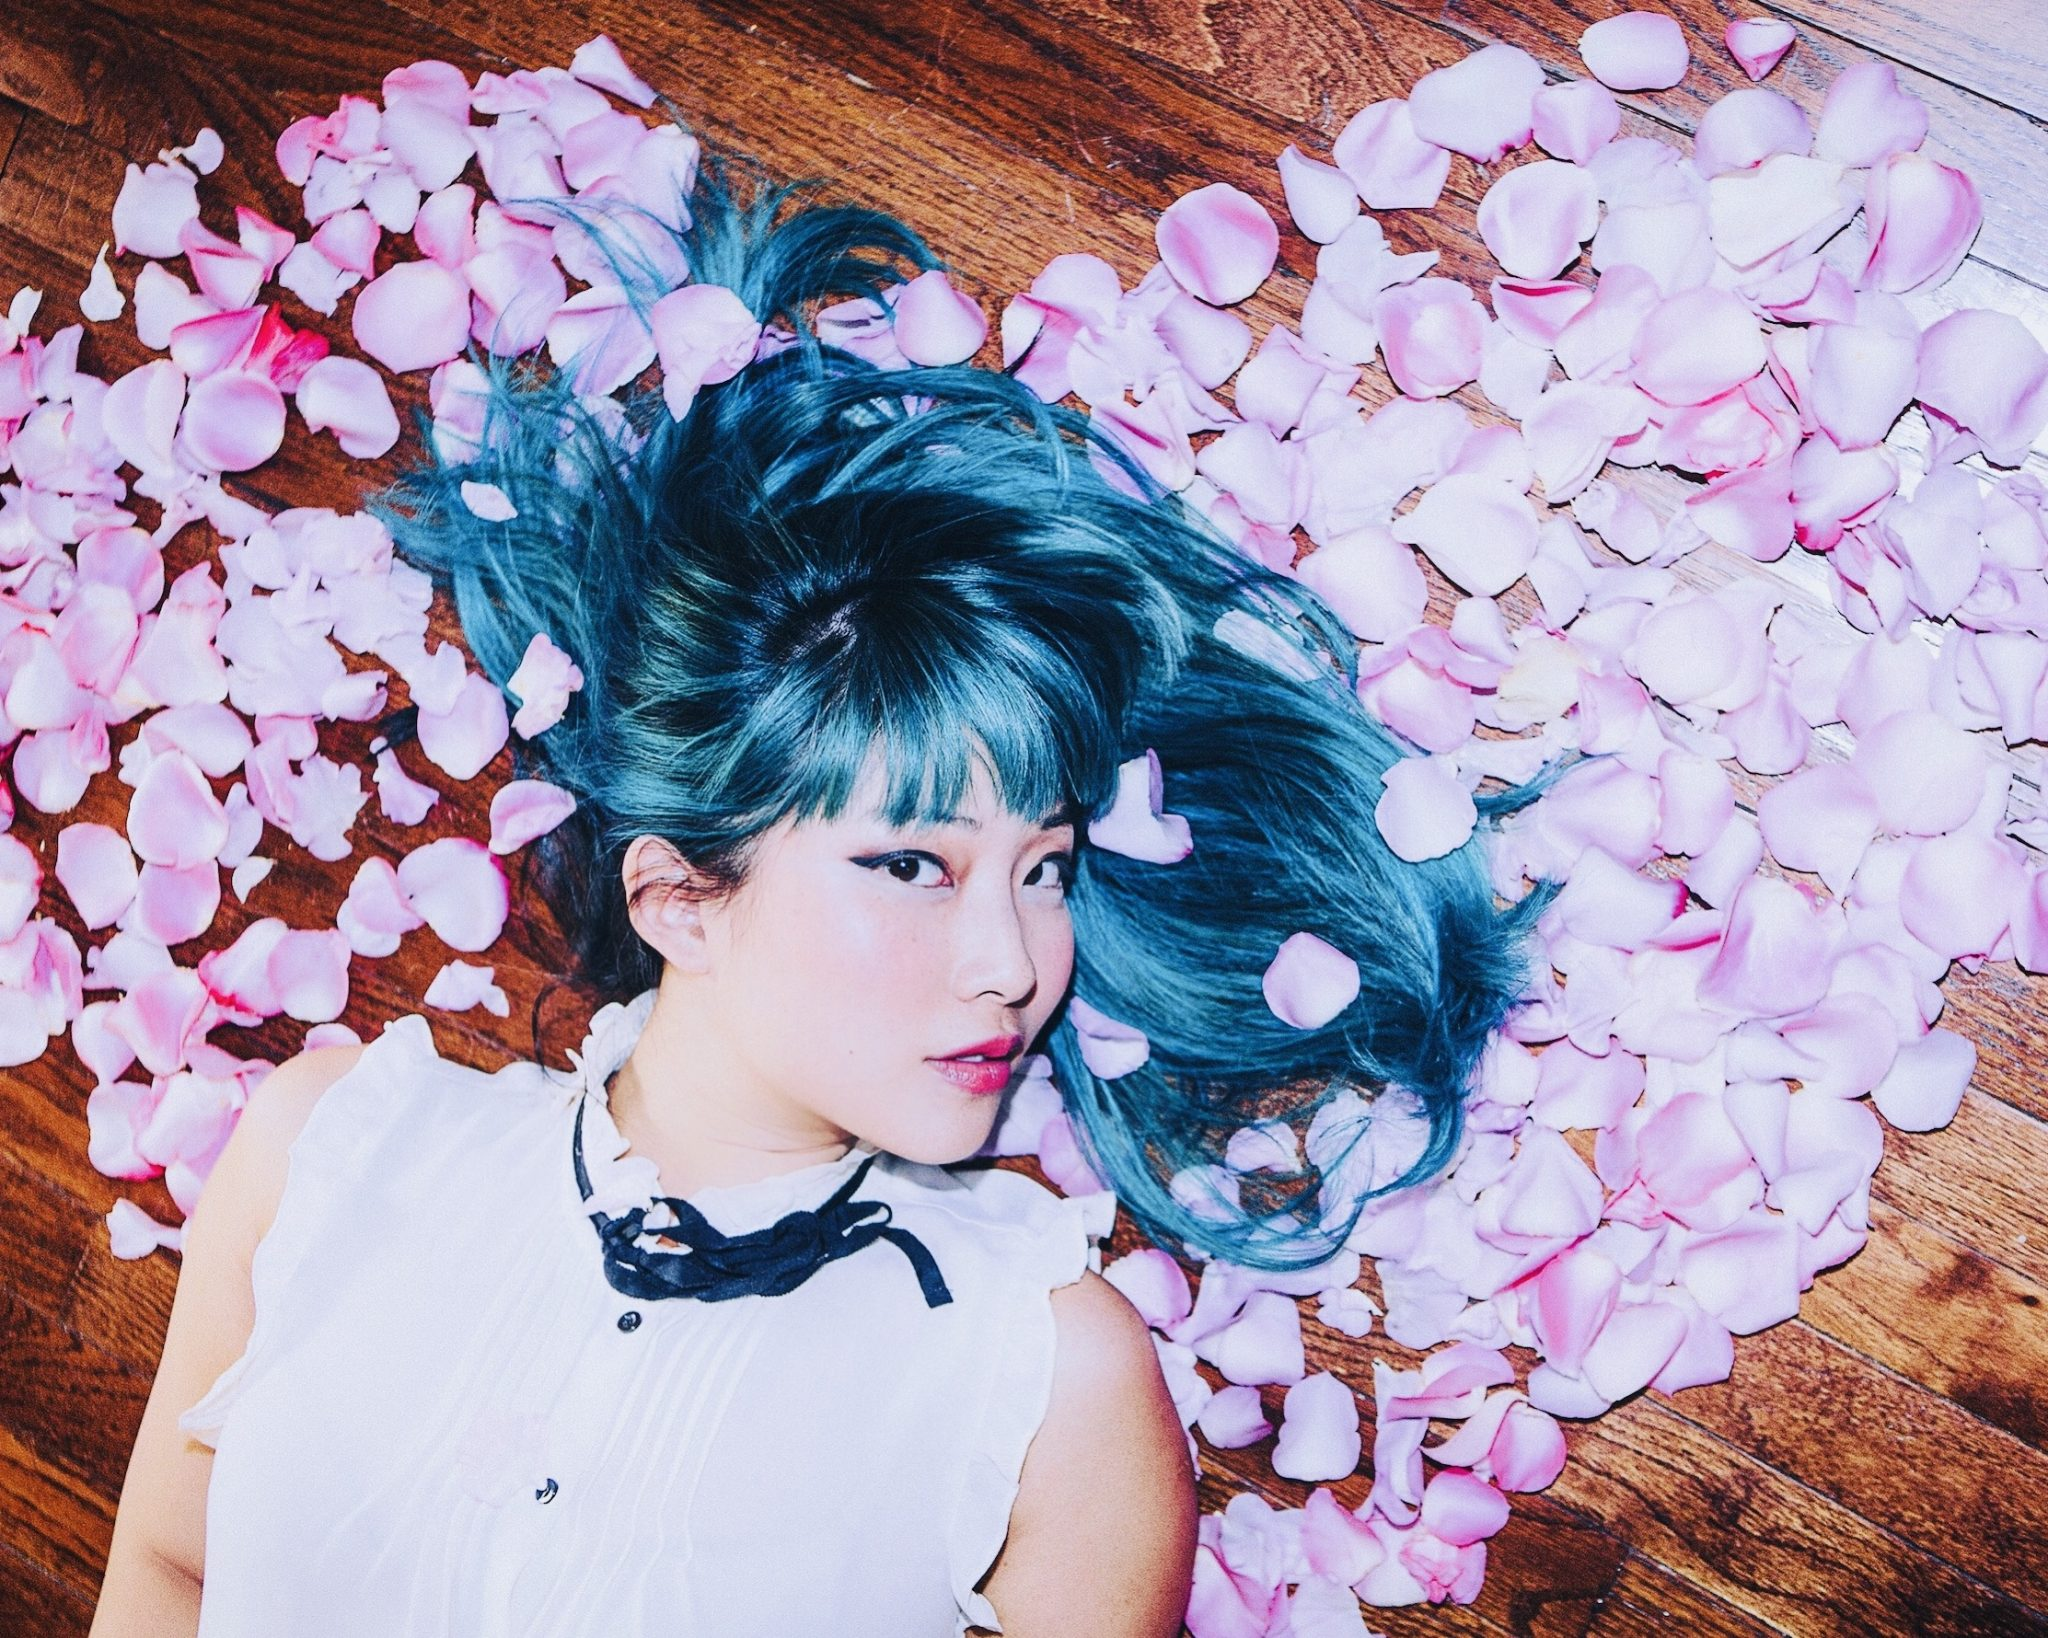 Colour cropped photograph of Polartropica. They are laying on a brown wooden floor with pink petals surrounding them. Their hair is turquoise blue, long and spread around them, with a fringe. Their head is leaning to one side. Their facial expression is neutral. They wear bright pink lipstick and a dark winged eyeliner. They have a white sleeveless blouse on with buttons and black ribbon detail at the top.